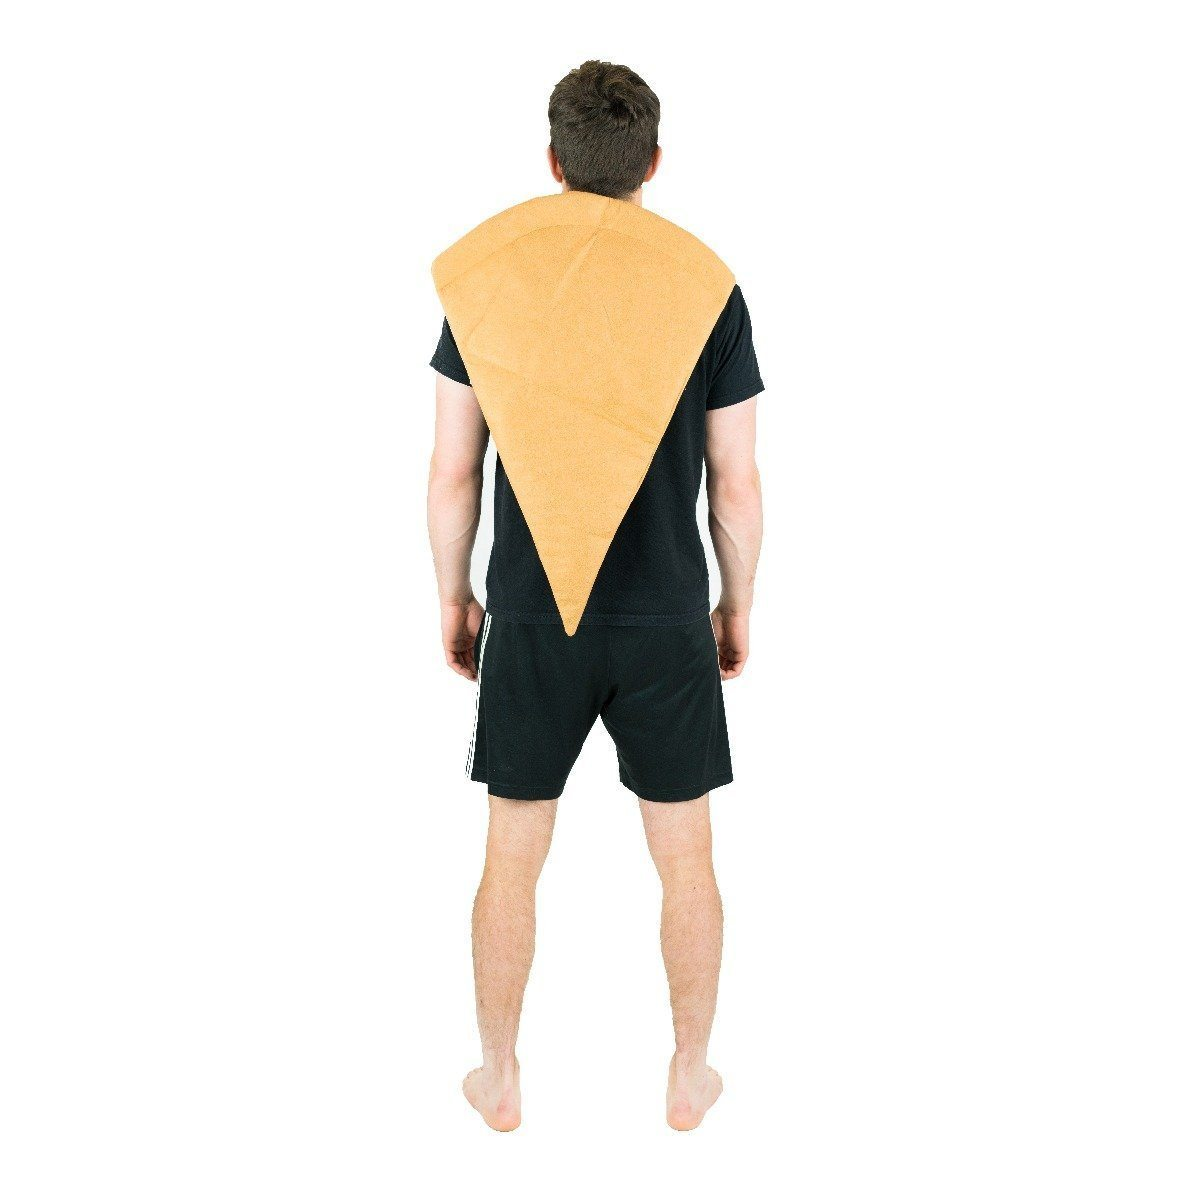 Fancy Dress - Pizza Costume